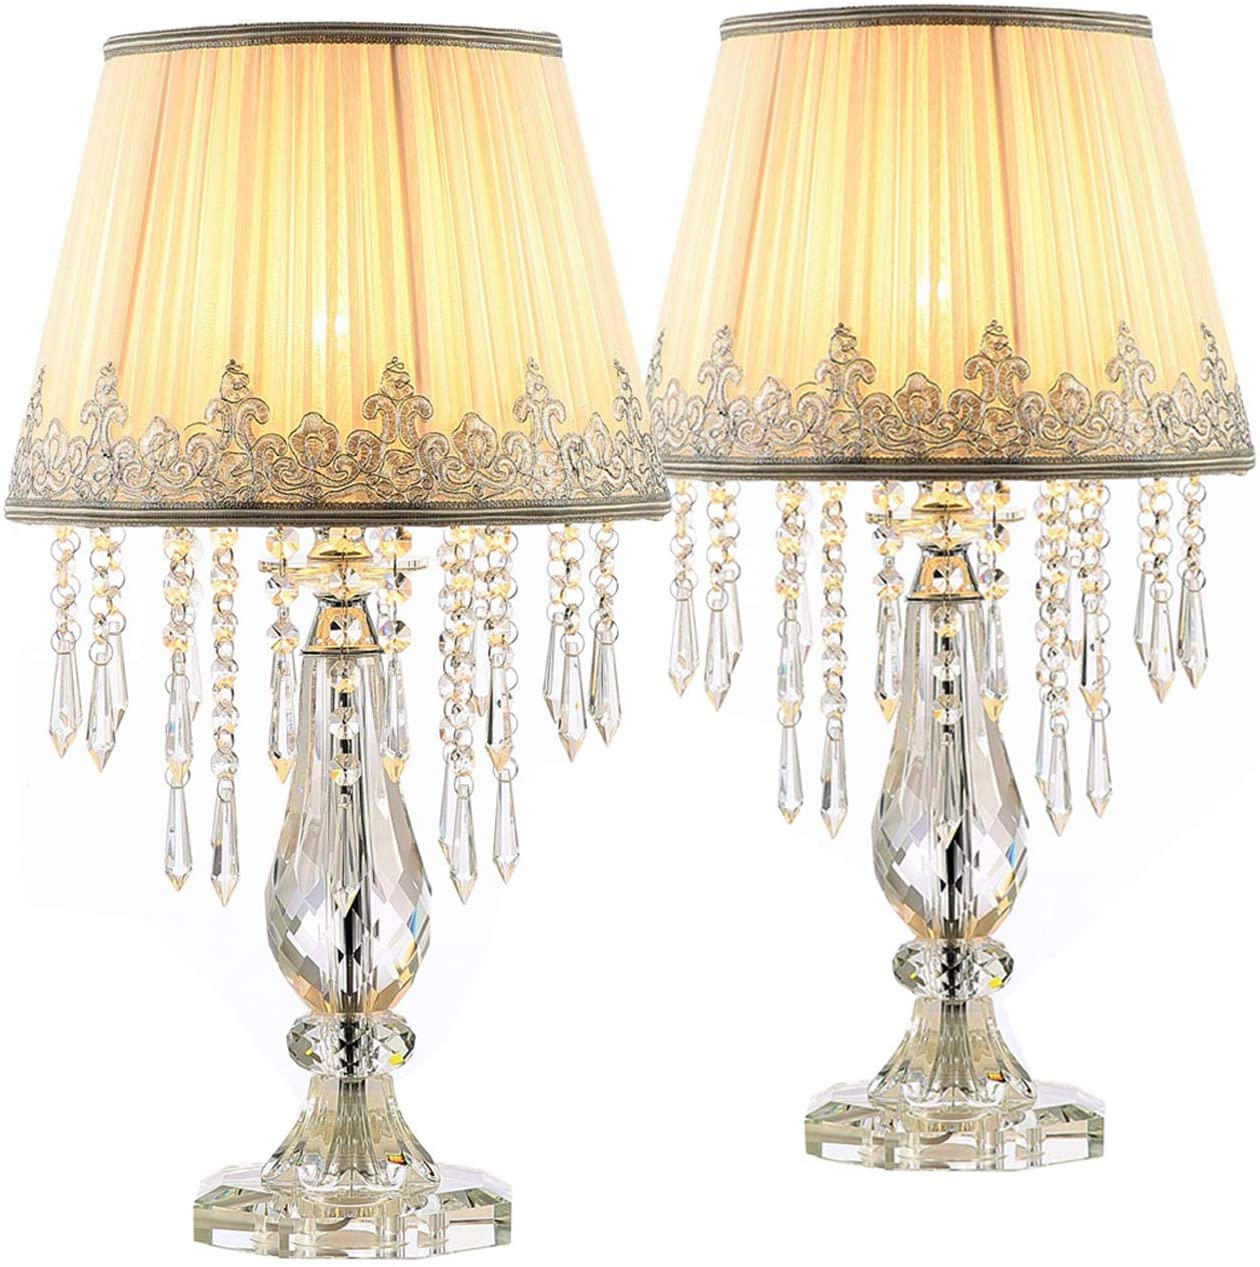 """Moooni Two Set of White Ruched Fabric Crystal Table Lamp Crystal Base Glam Bedside Desk Lamps Set of 2 for Bedroom Living Room Dimmable W 12.8"""" X H 22.8"""""""